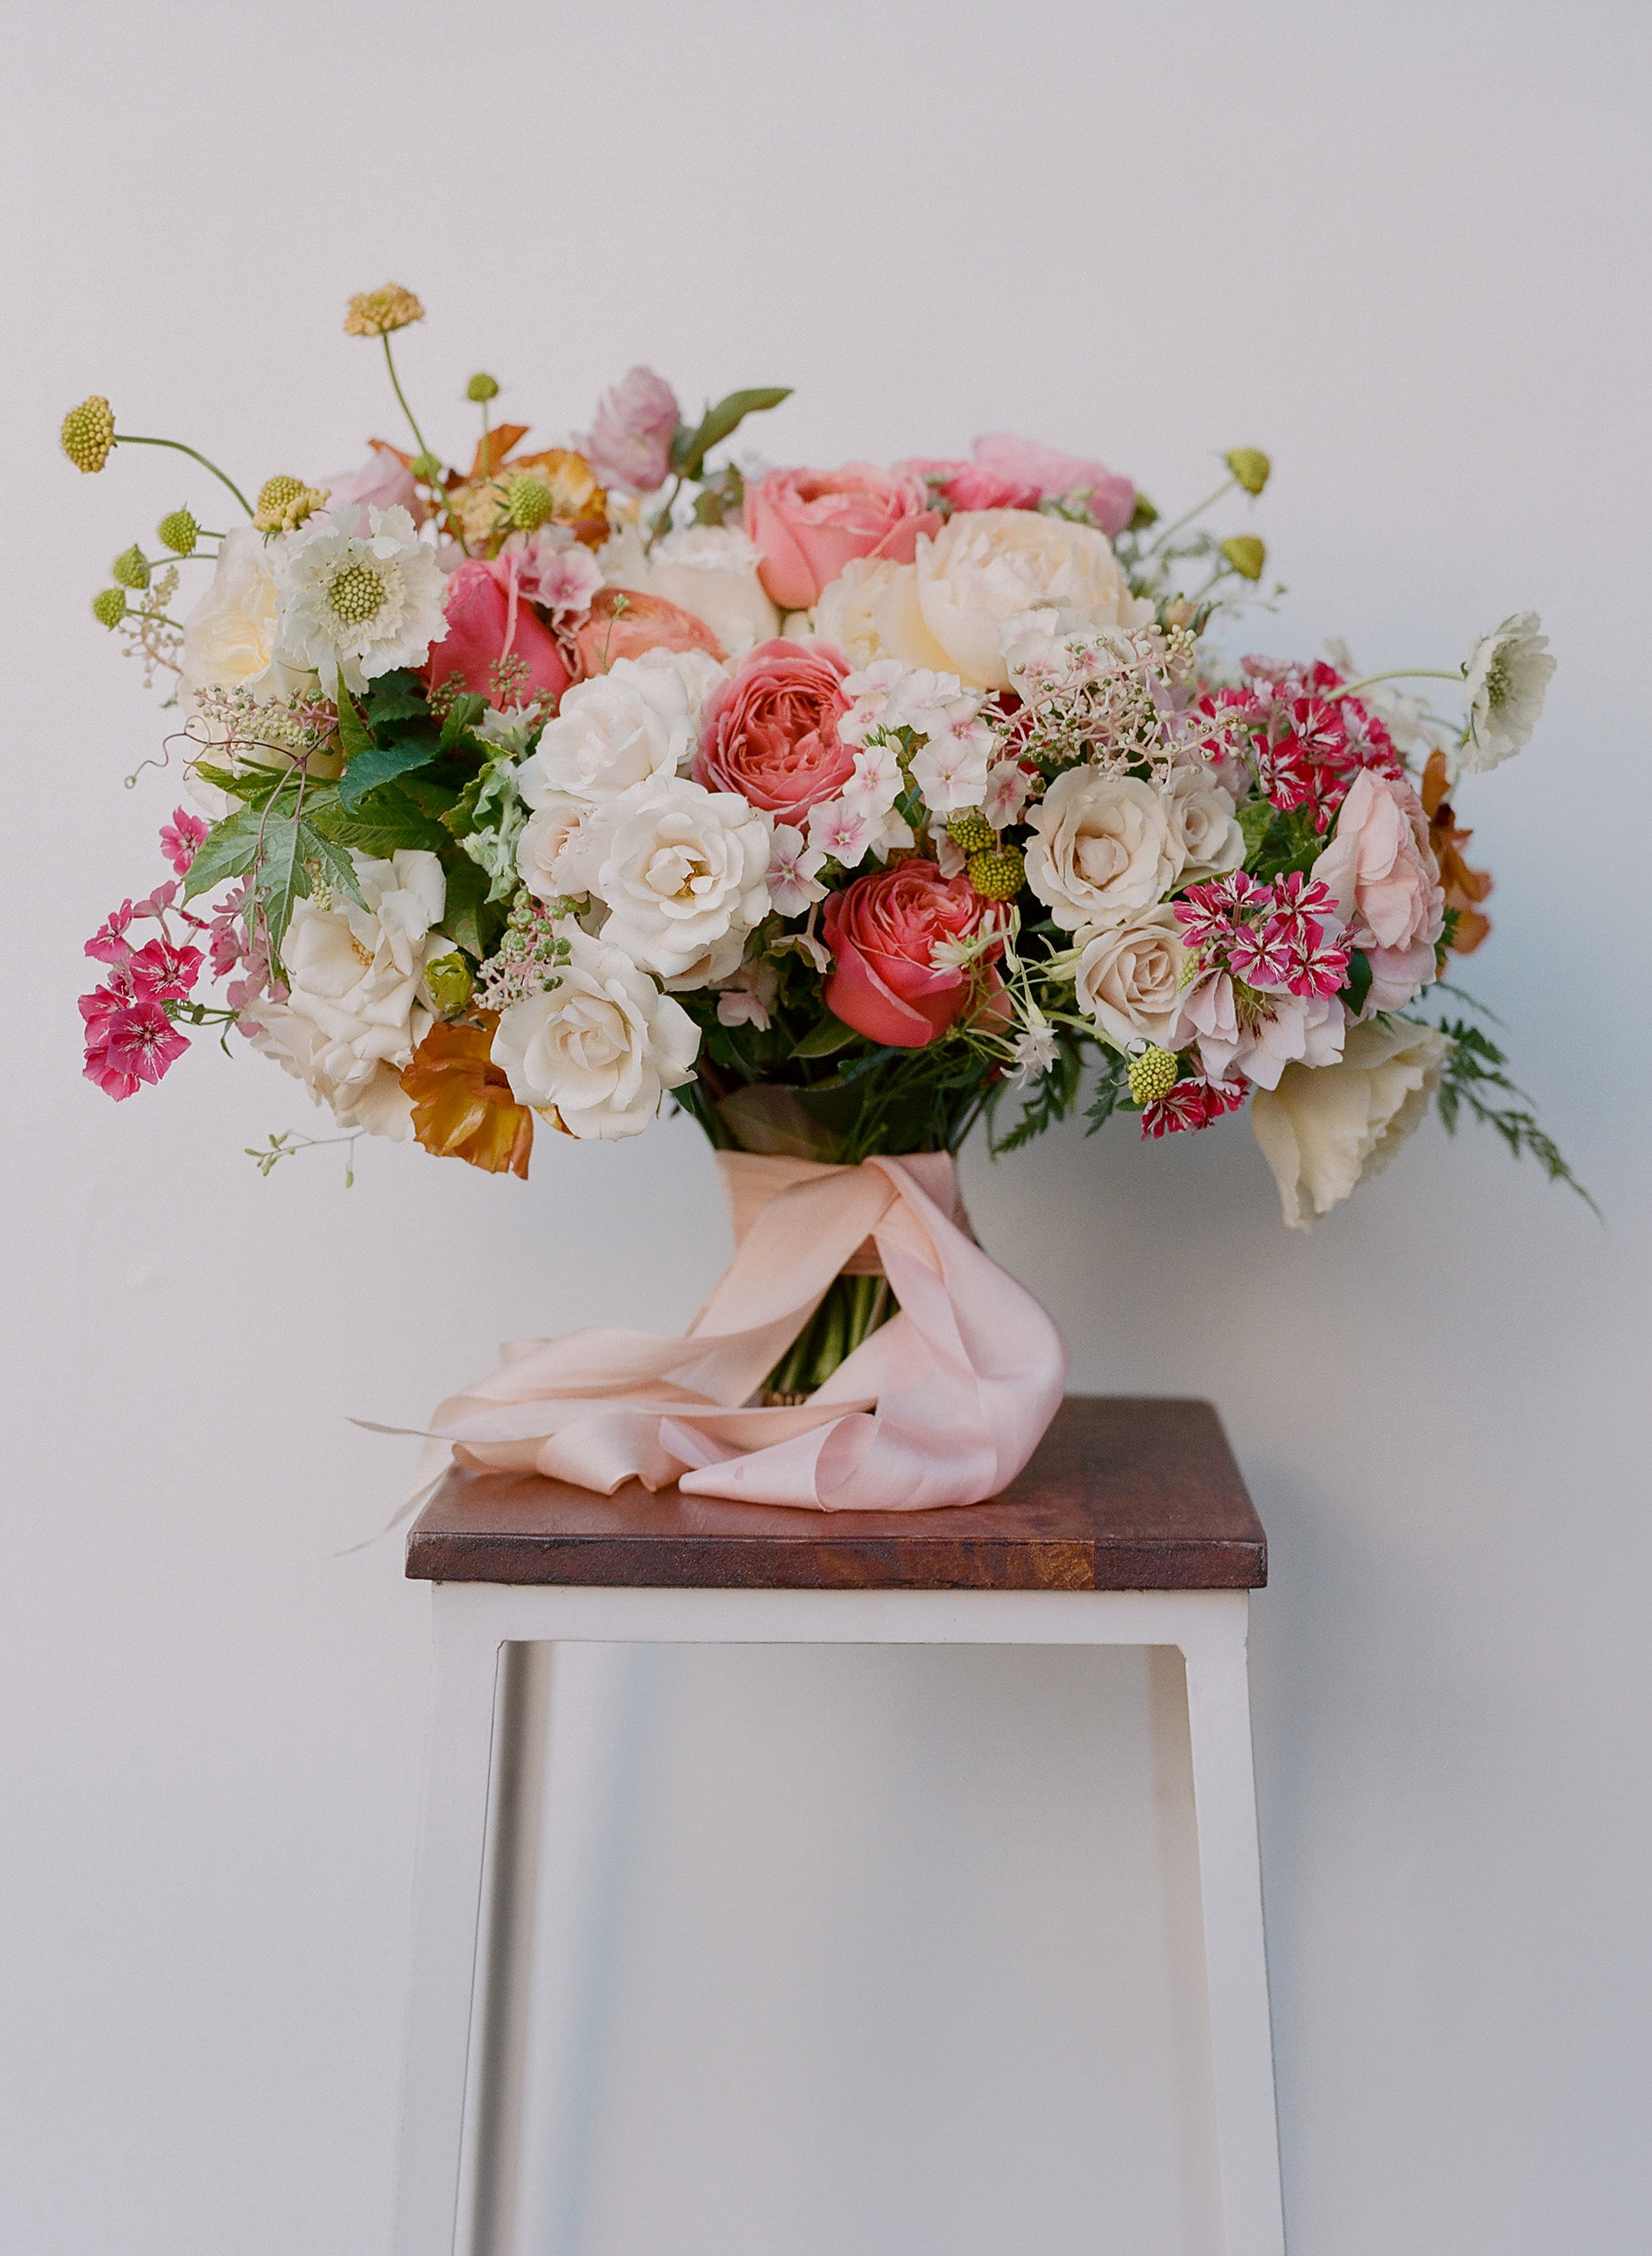 bouquet of white and pink roses with ranunculus and poke weed